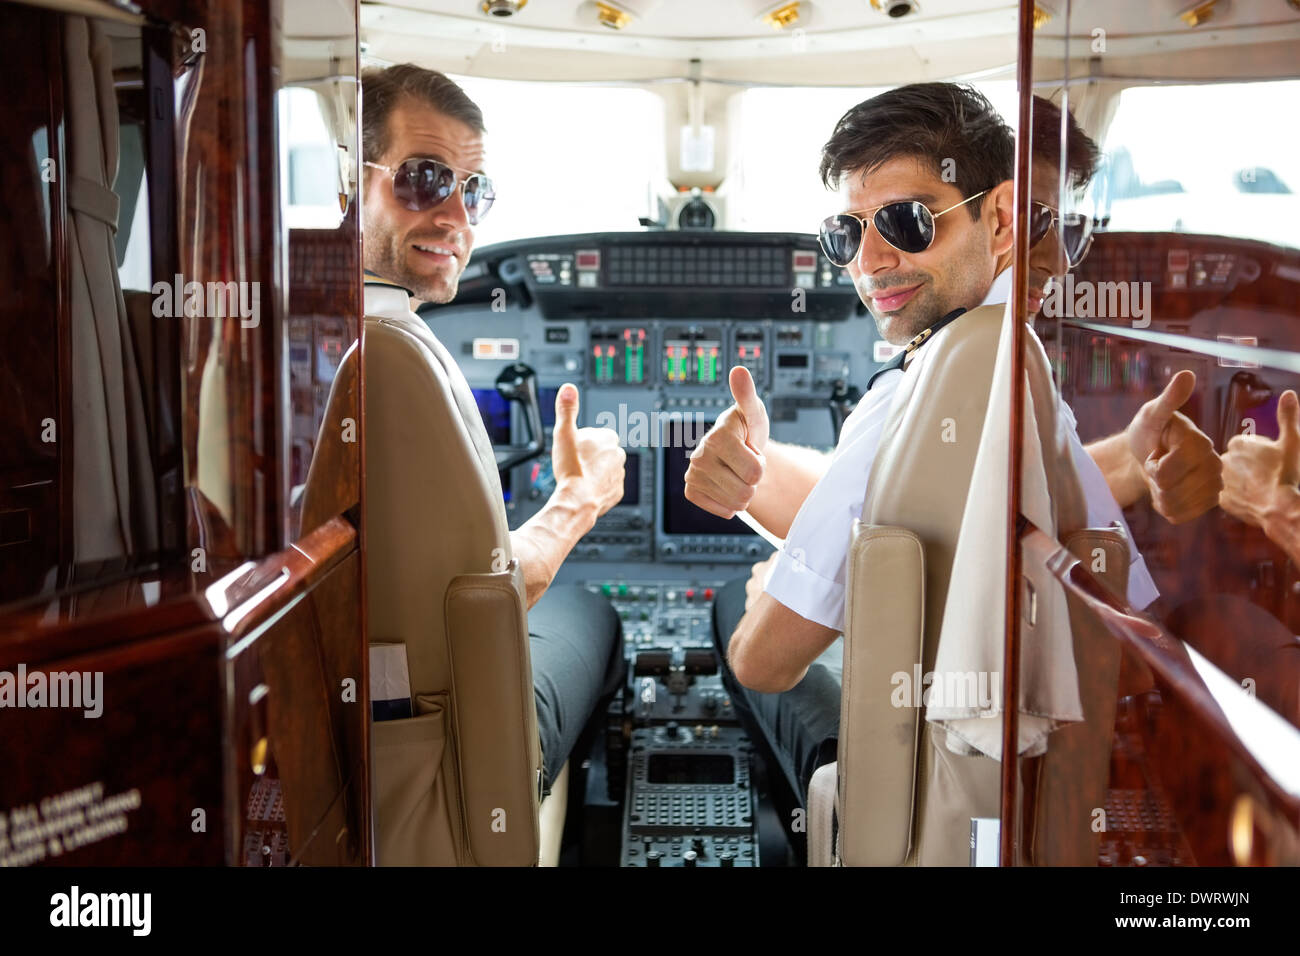 Pilots Gesturing Thumbs Up In Cockpit - Stock Image